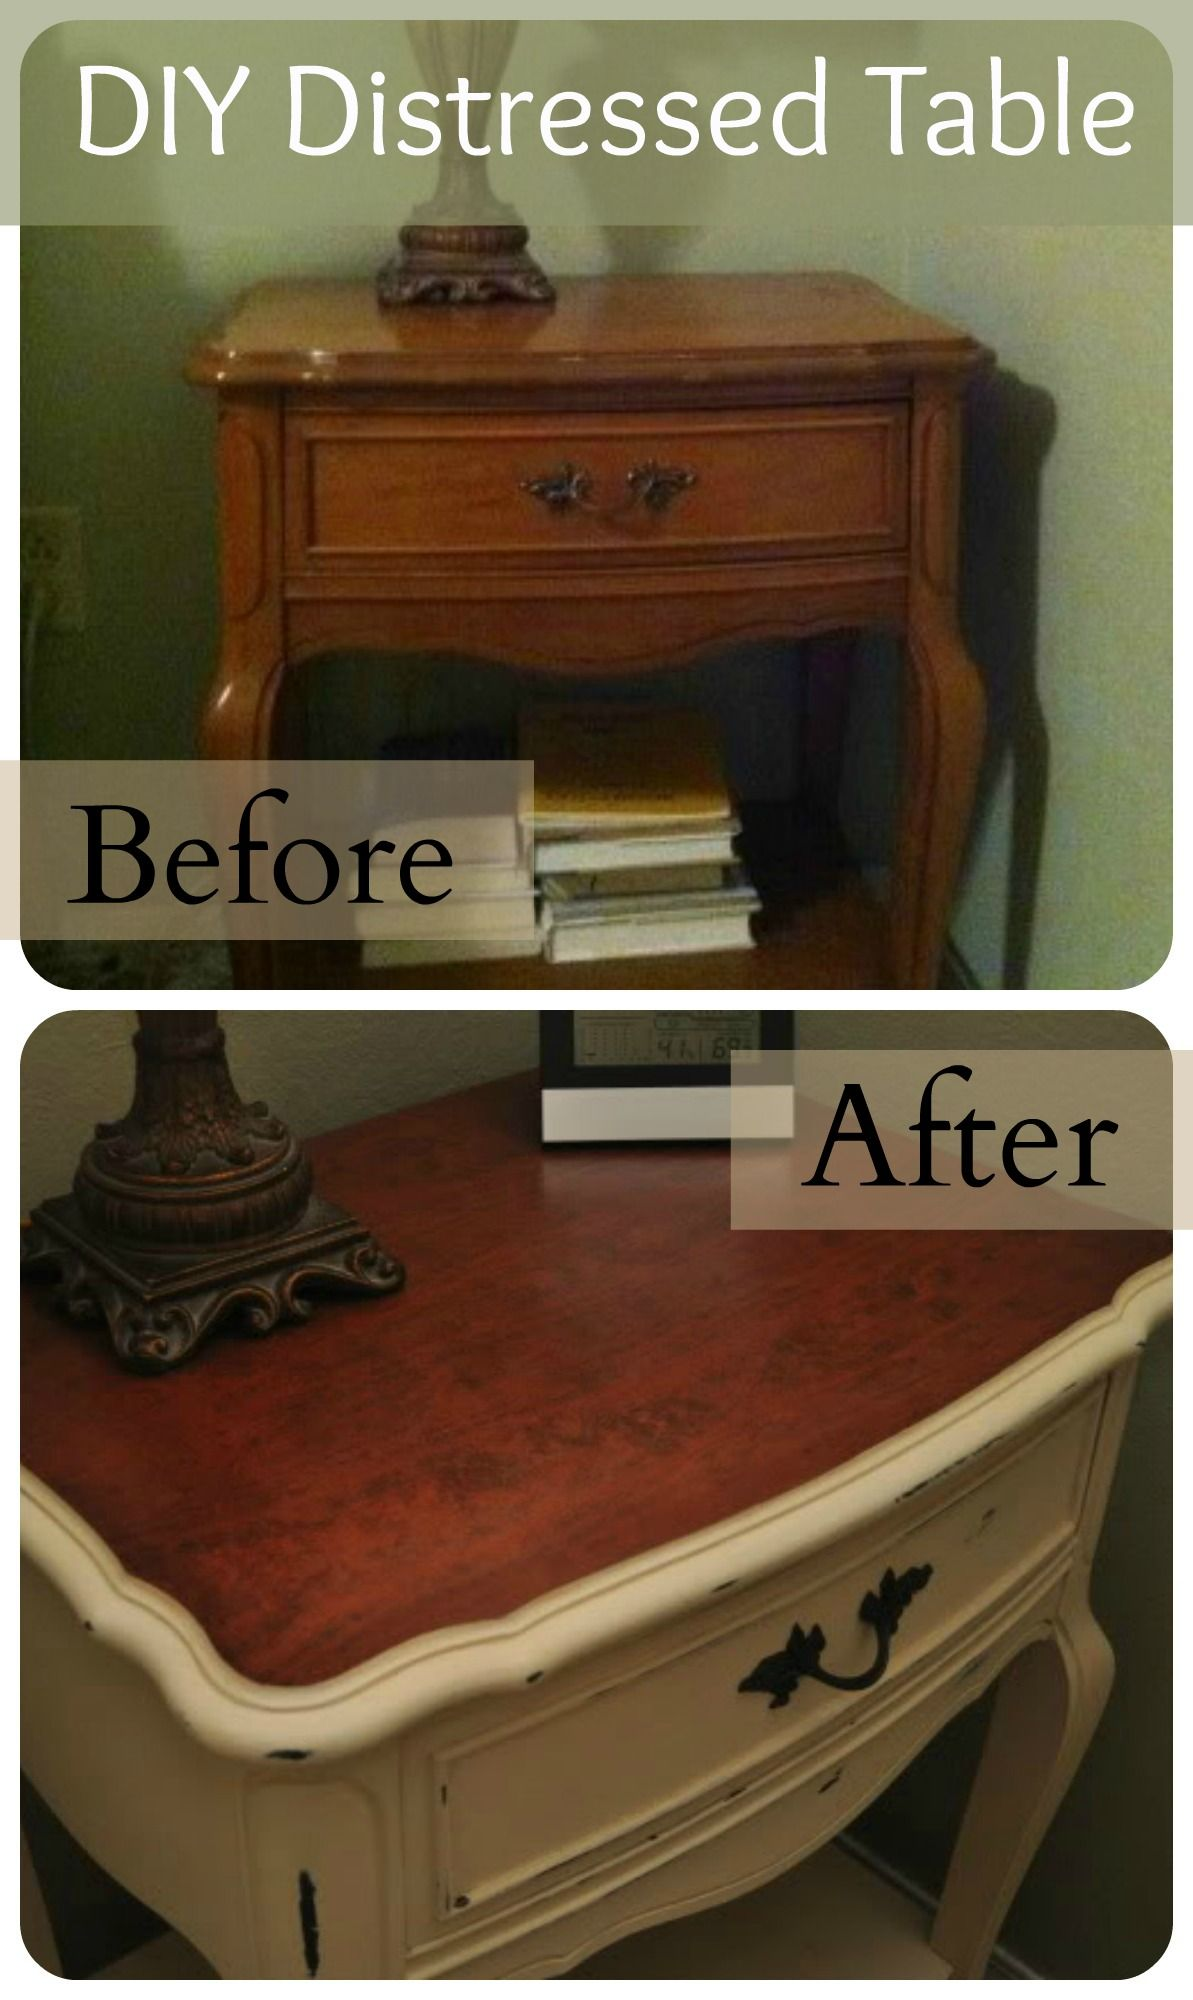 DIY Distressed Table Transformation Tutorial Painting